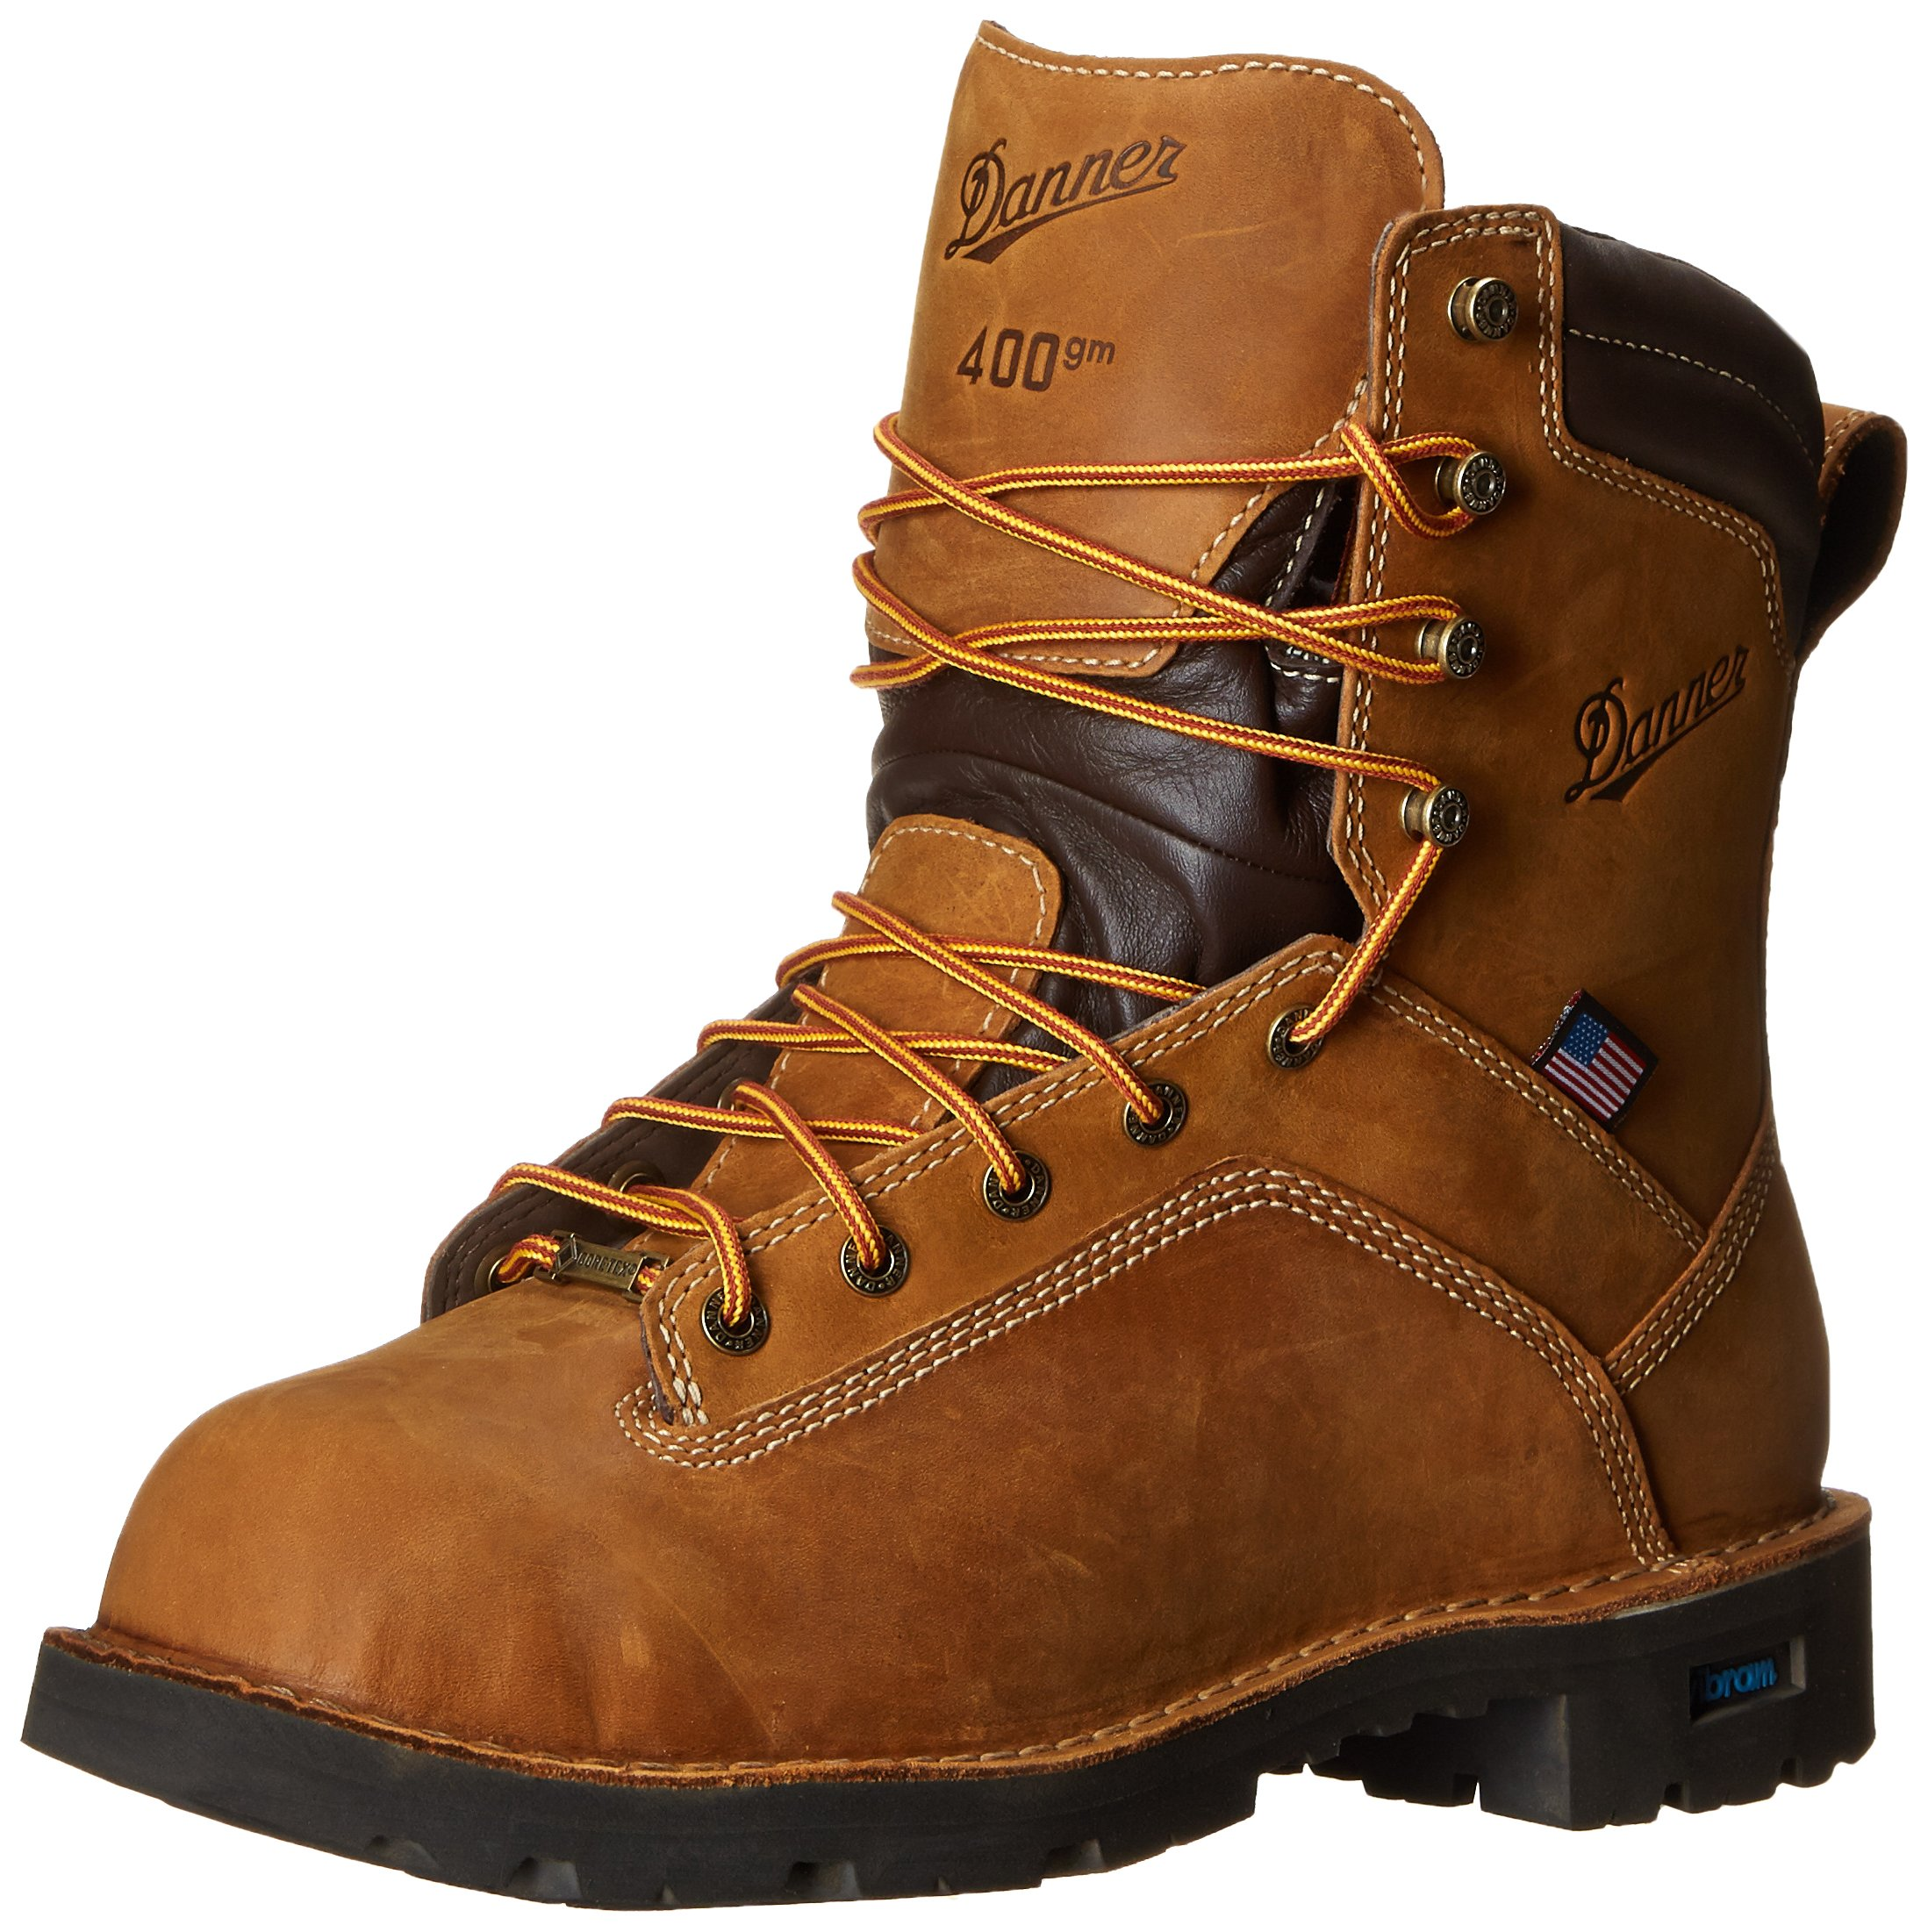 Danner Men's Quarry USA 8 Inch 400G NMT Work Boot,Distressed Brown,8.5 EE US by Danner